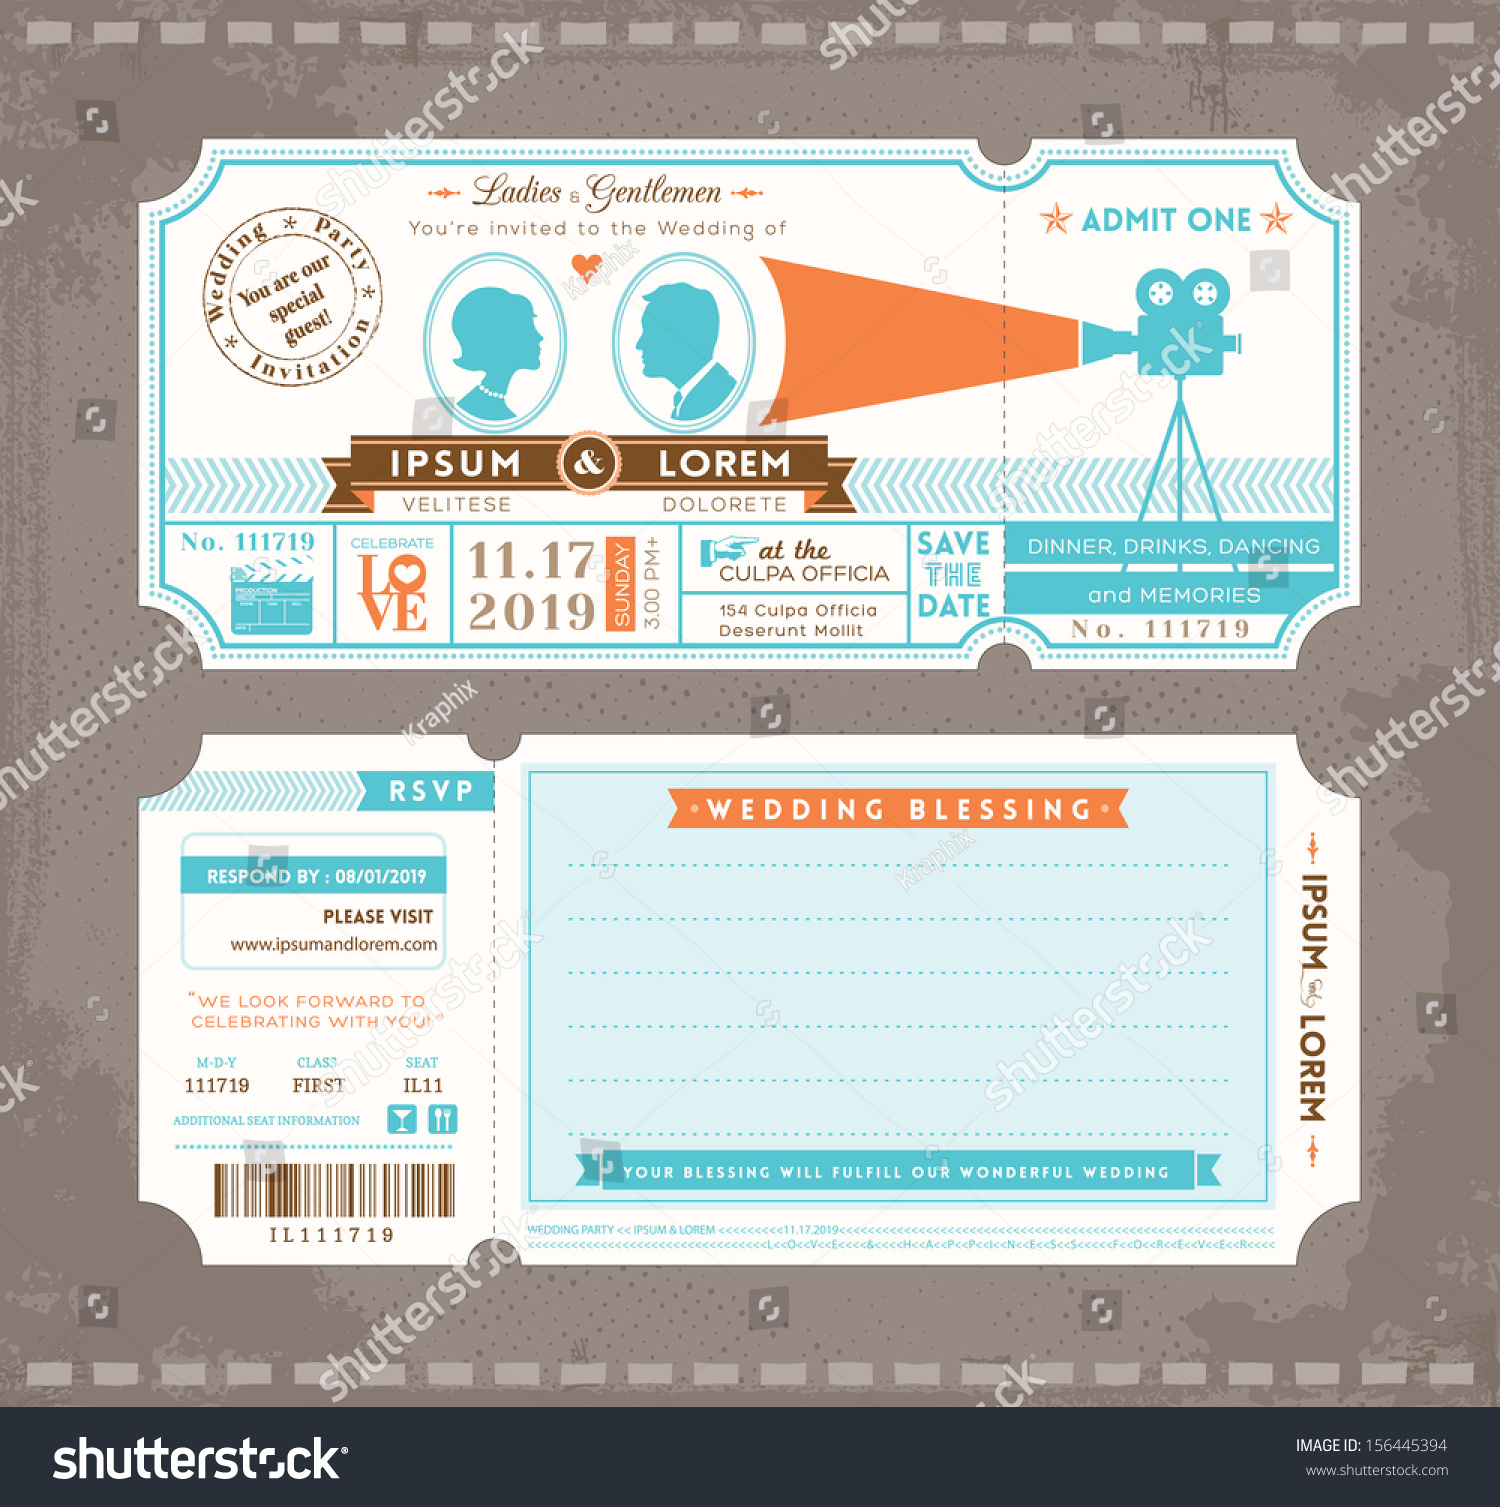 Templates stock vector image 74563848 doterra drawing entry form